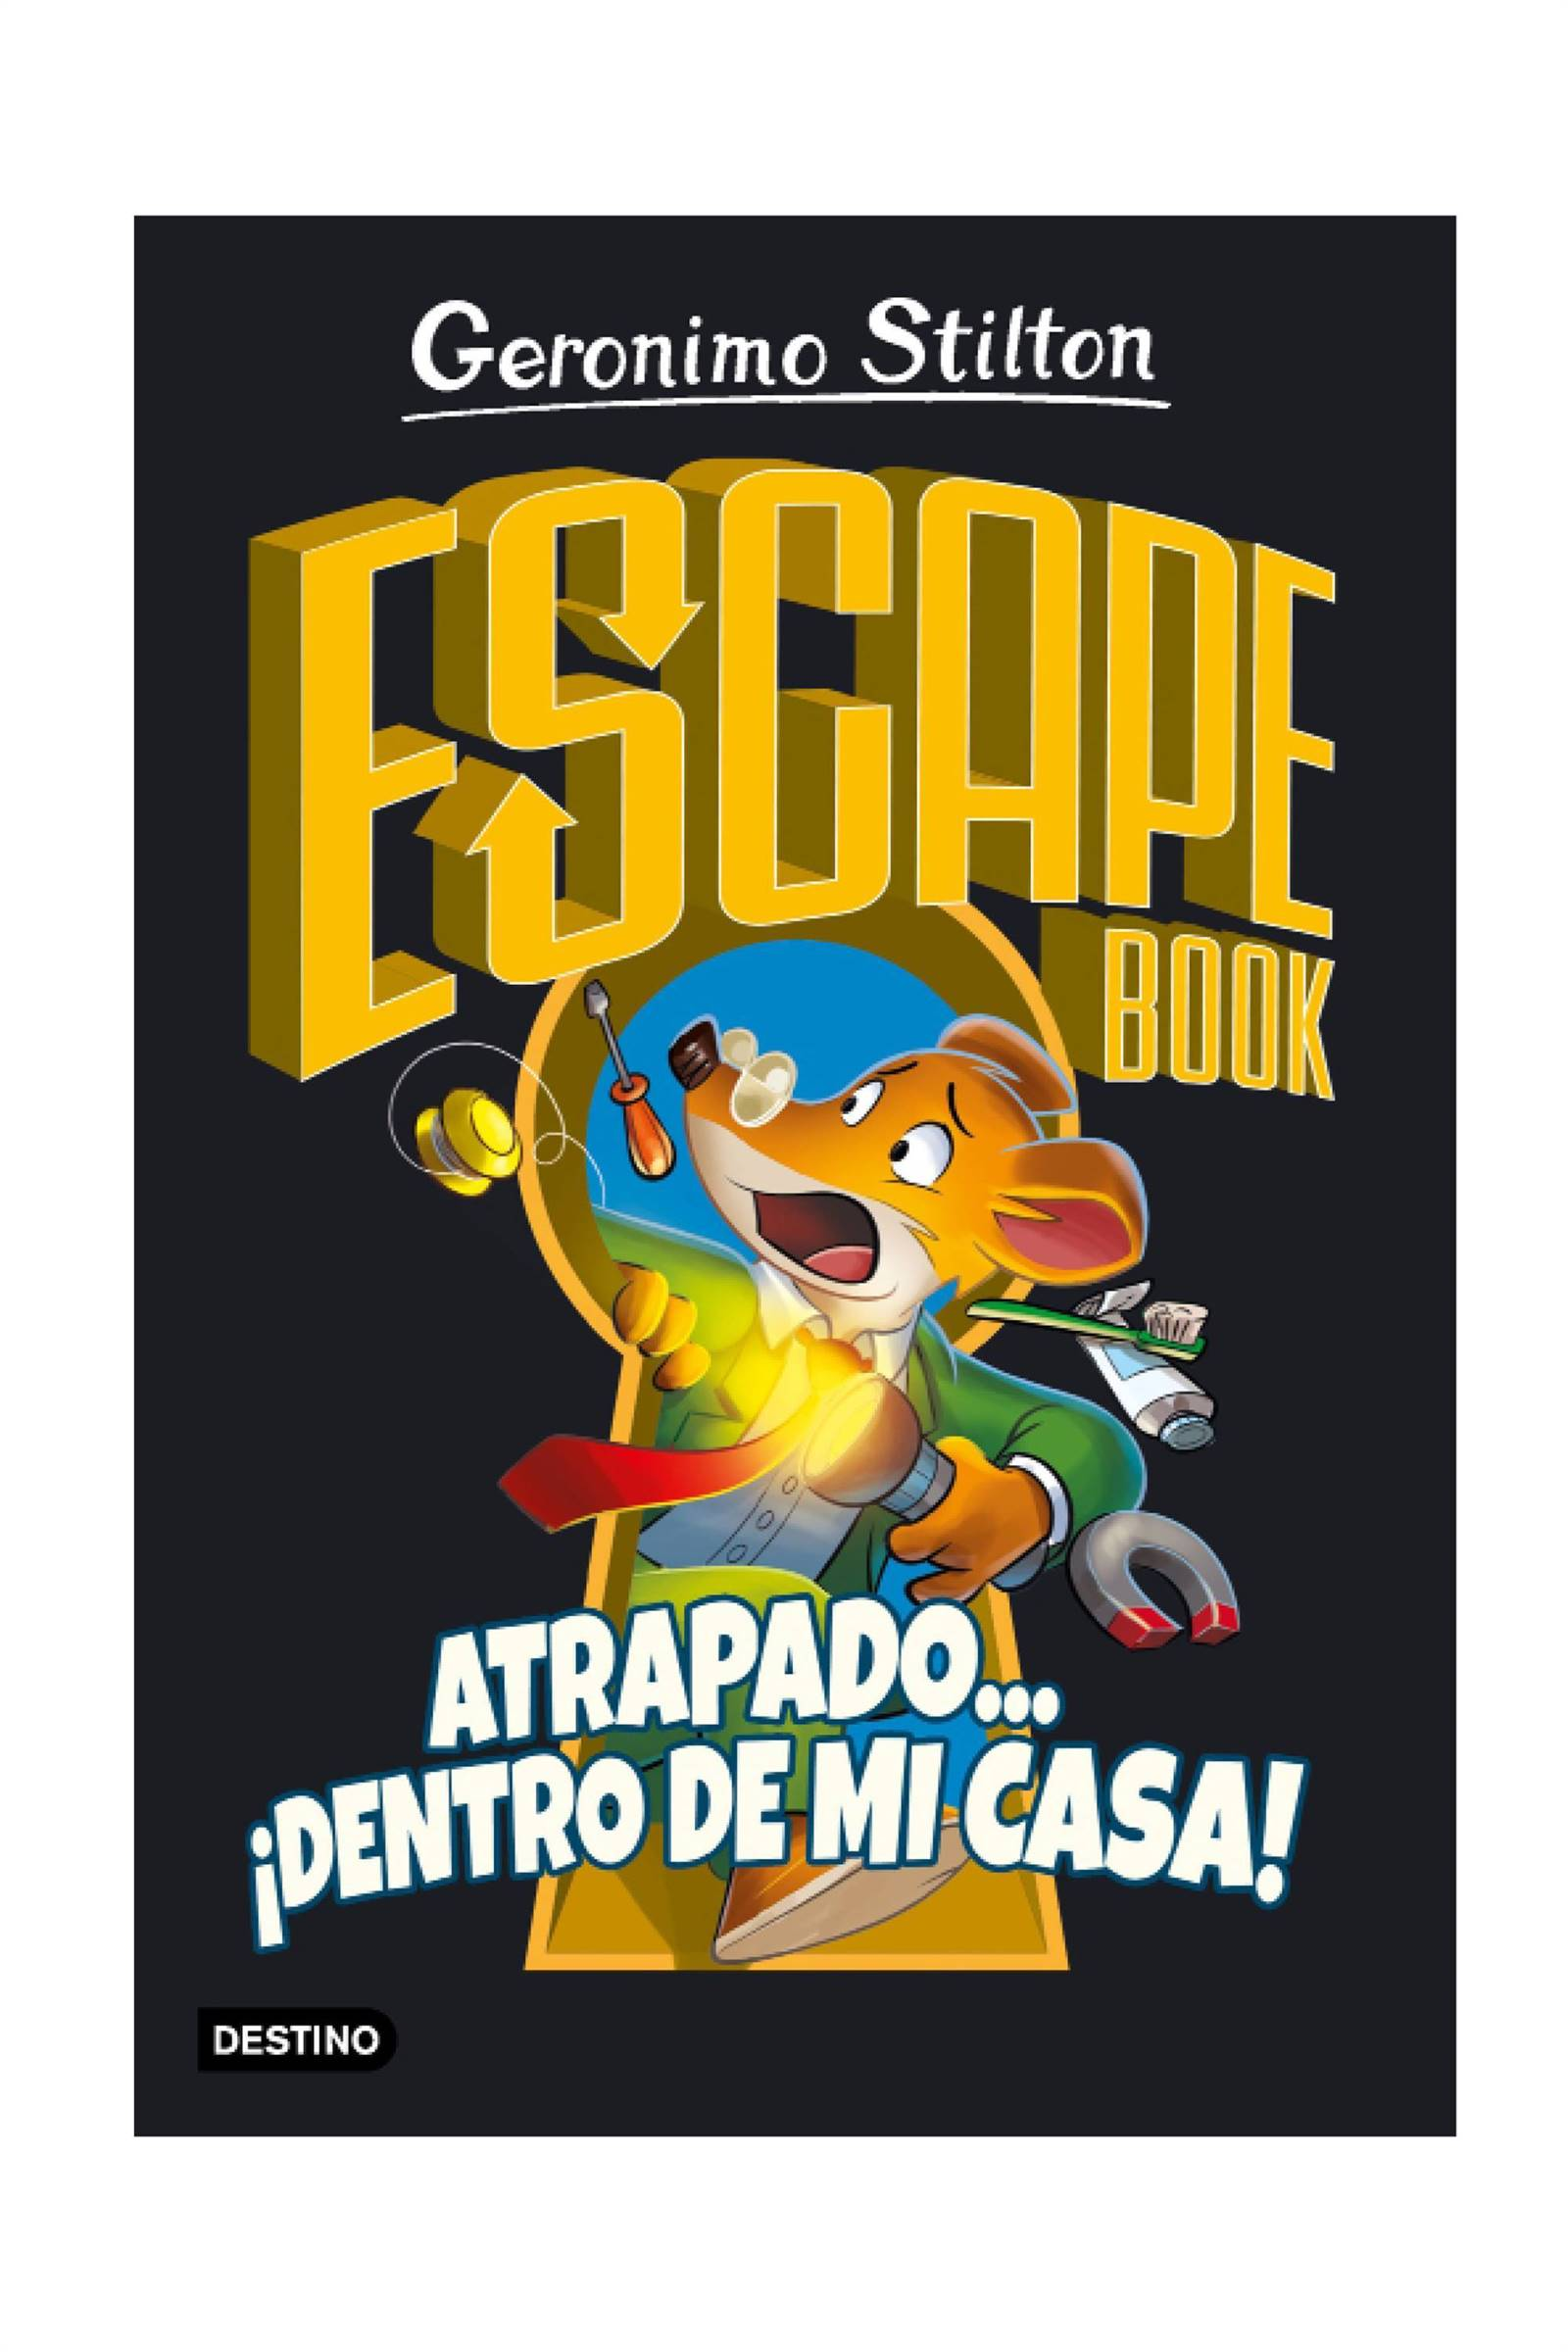 Escape book. Atrapado ¡dentro de mi casa! De Geronimo Stilton